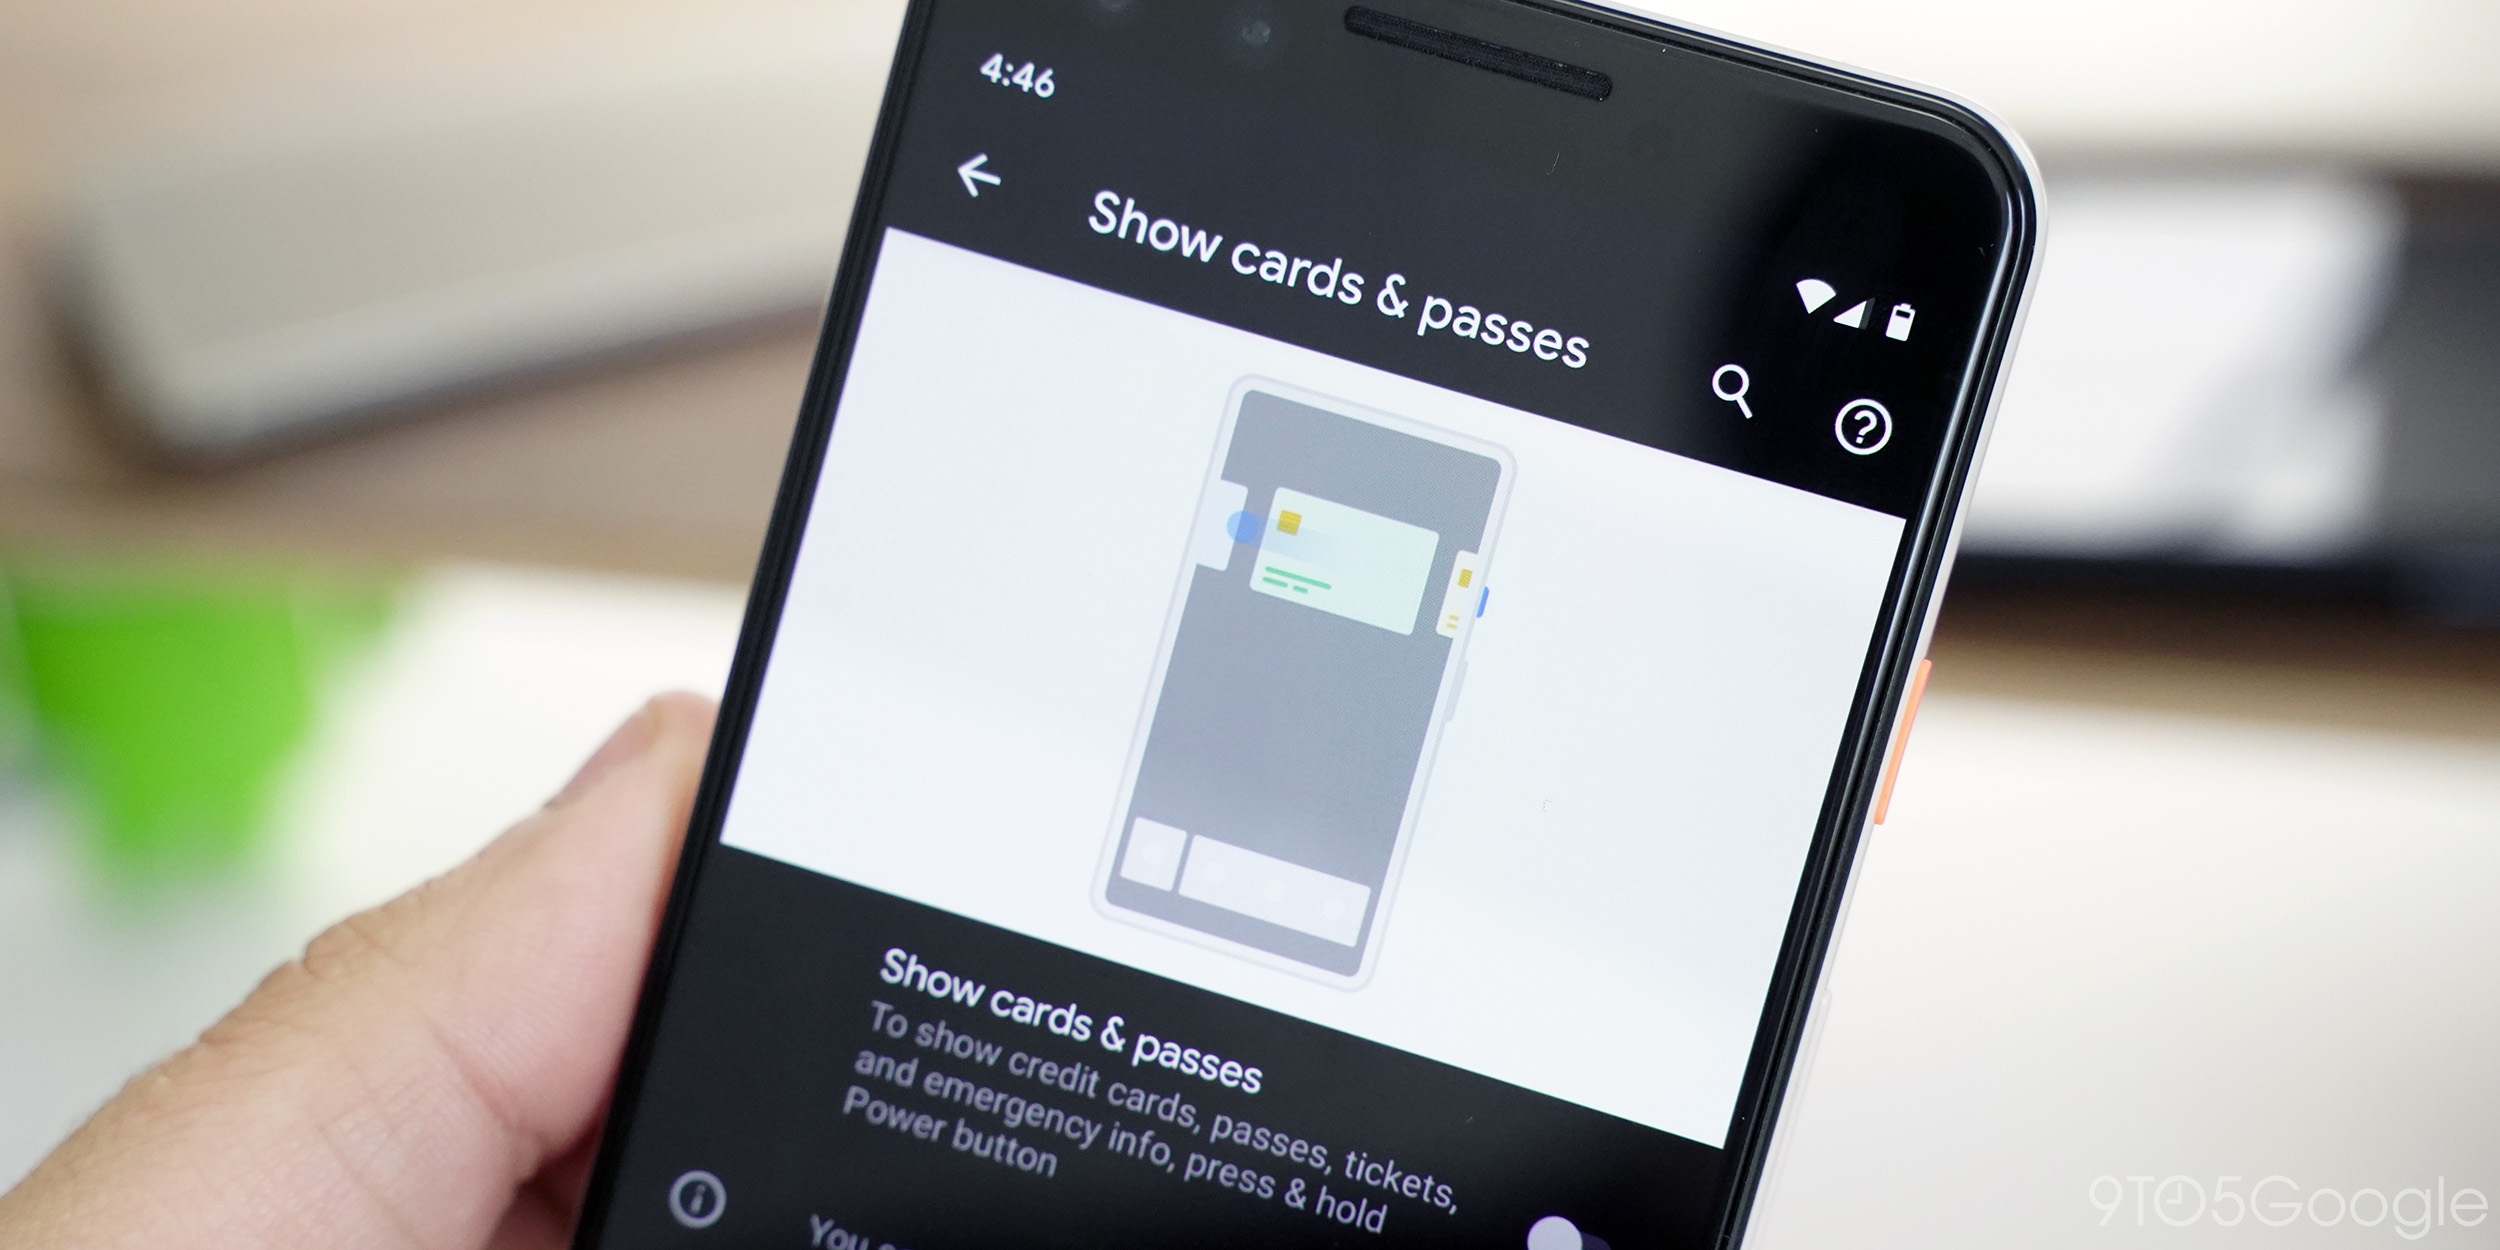 Google Pay could add cards to Android's power menu in Q